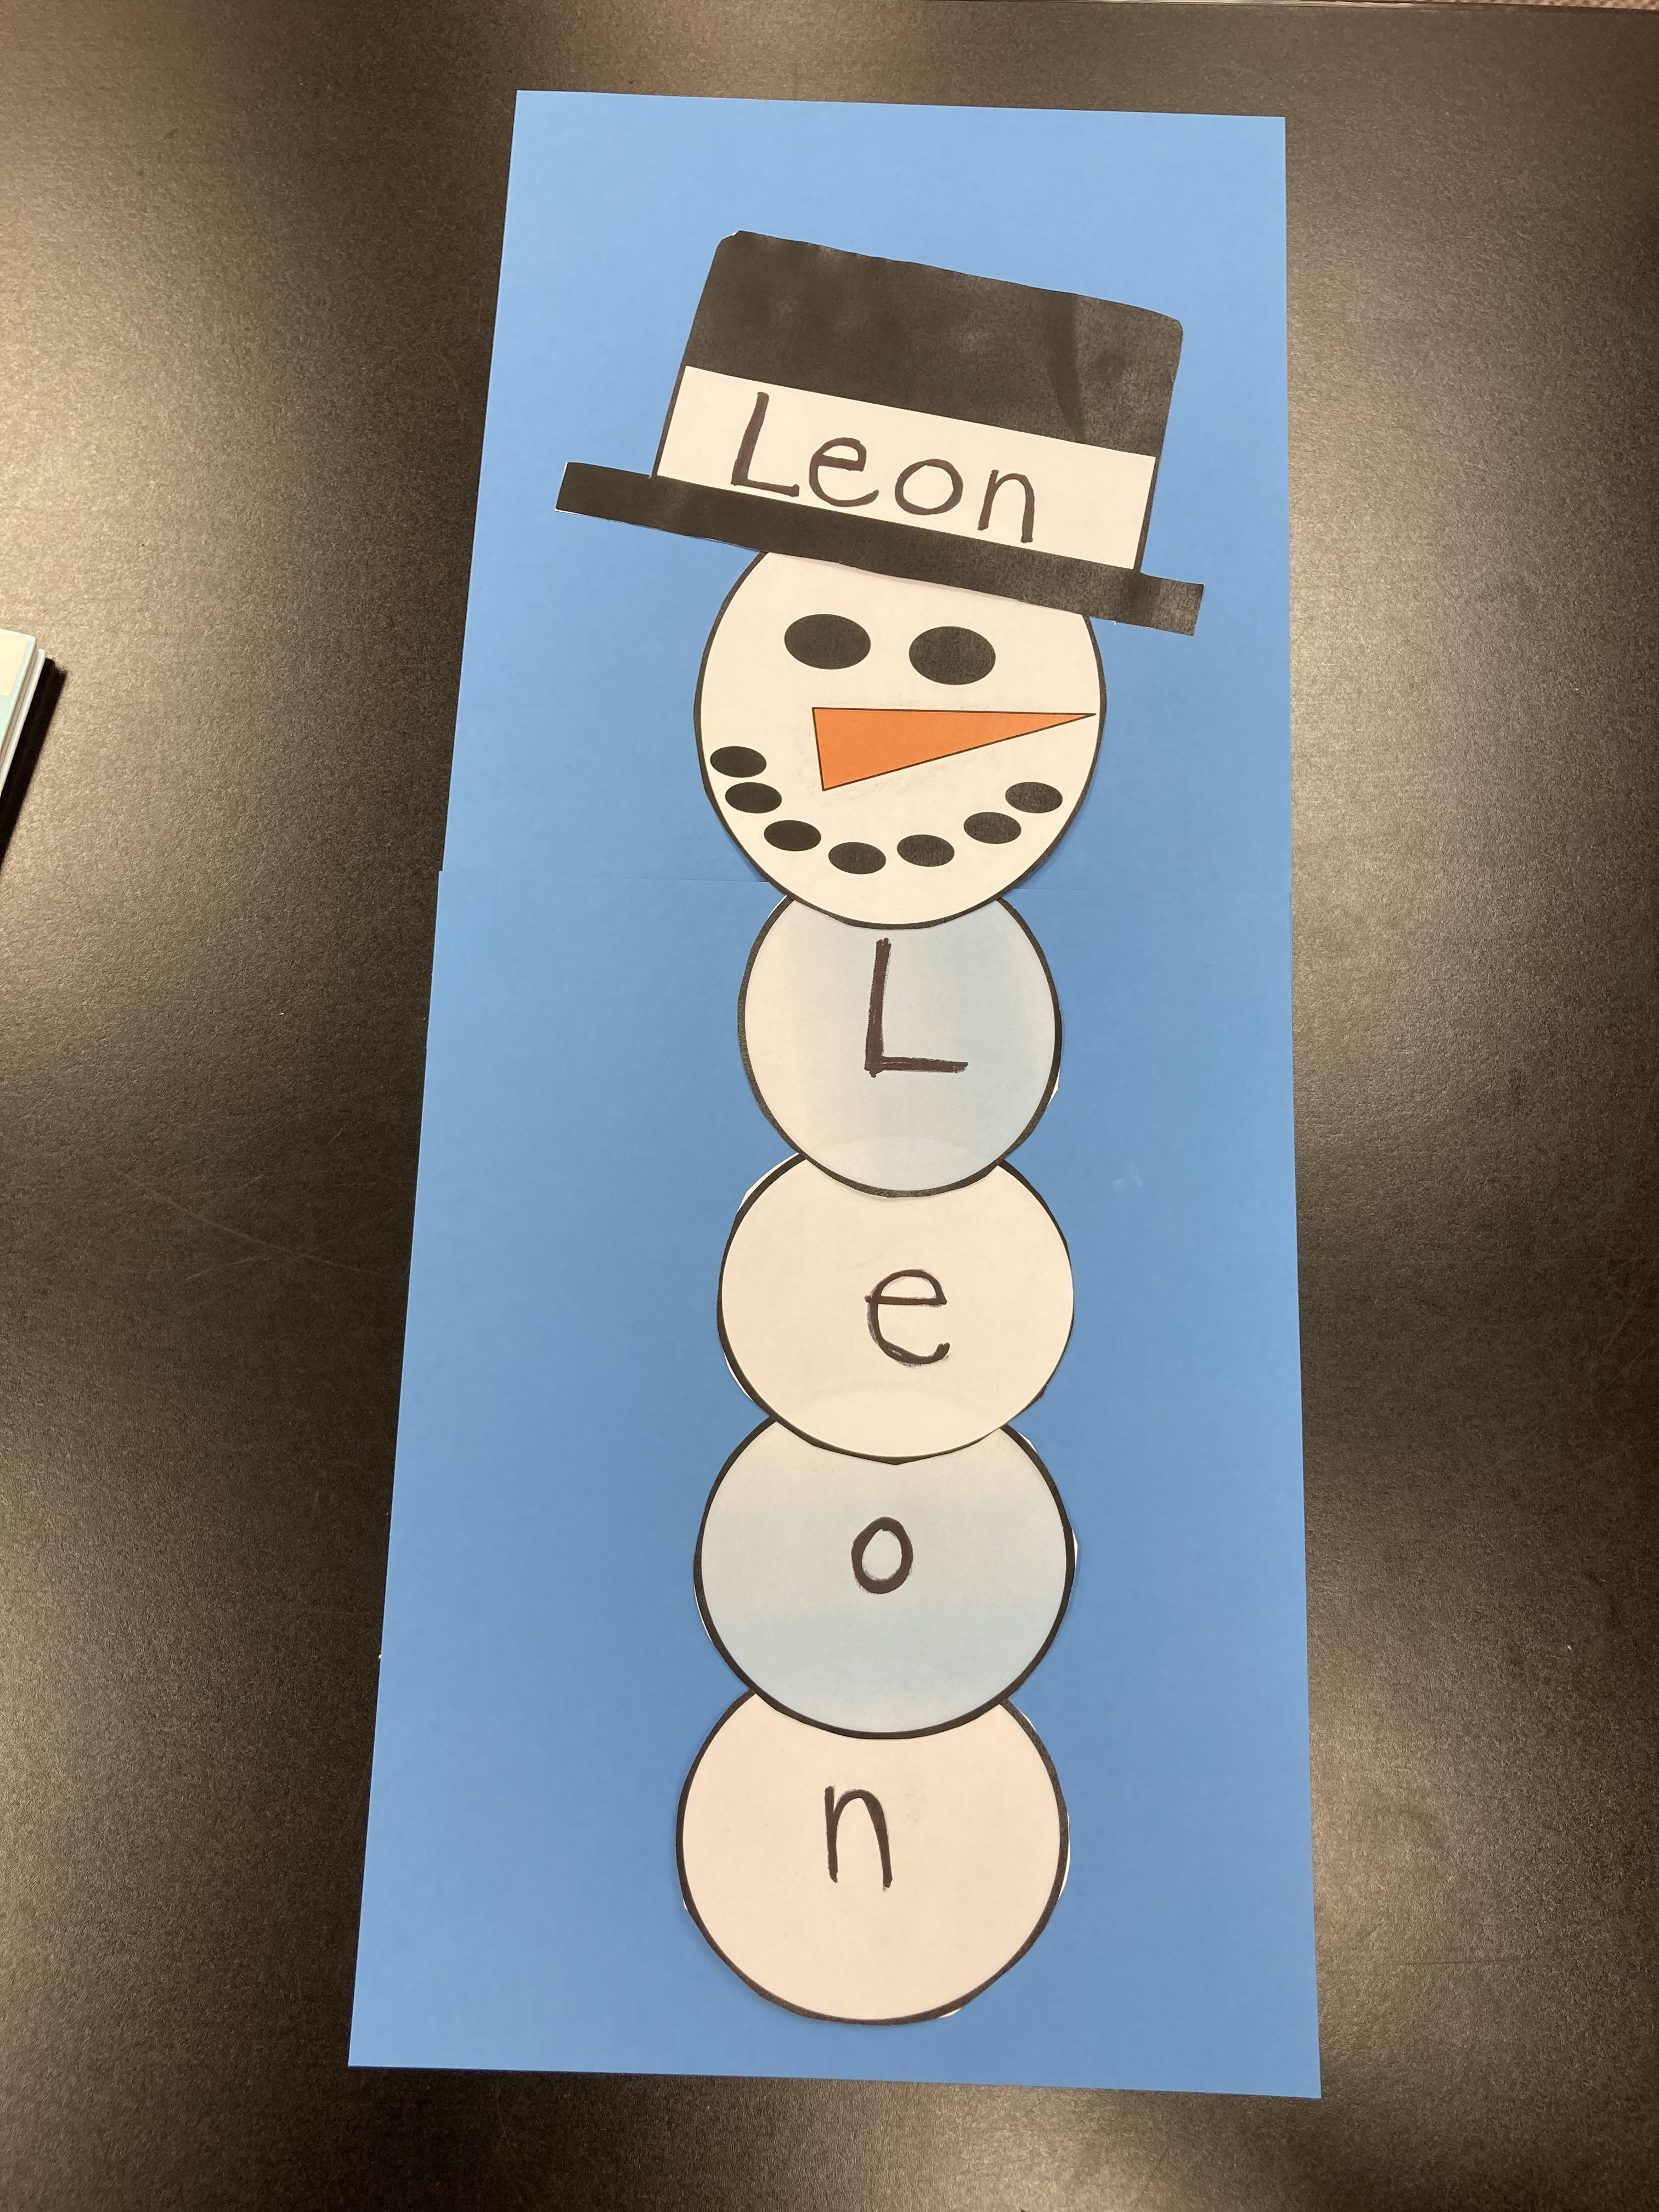 Image of Snowman with letters on body